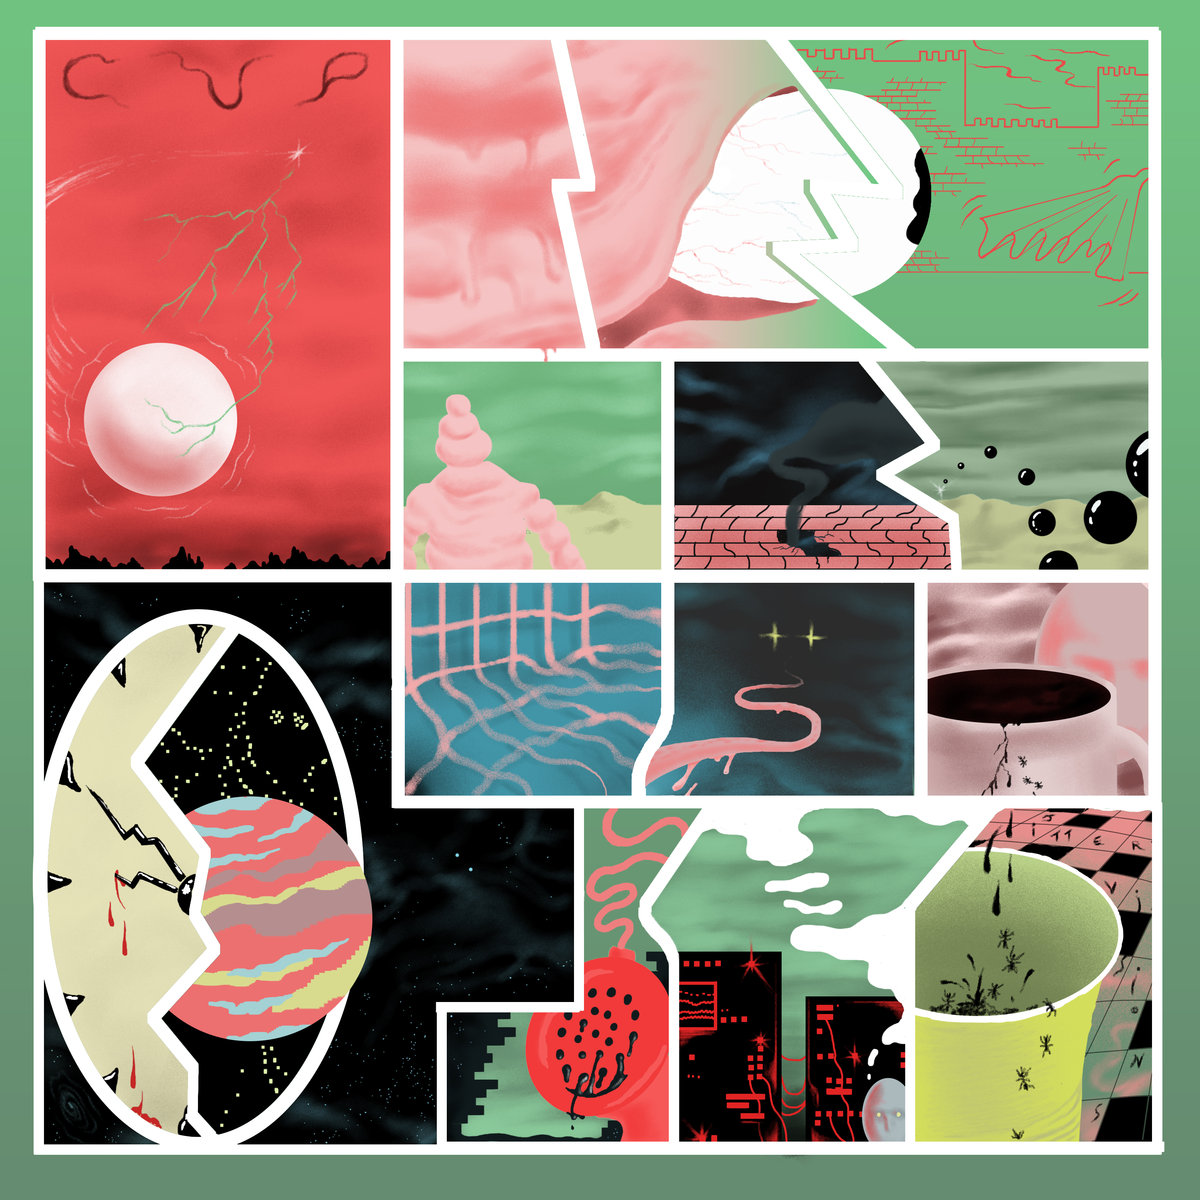 CUP – Jitter Visions (Aagoo Records)